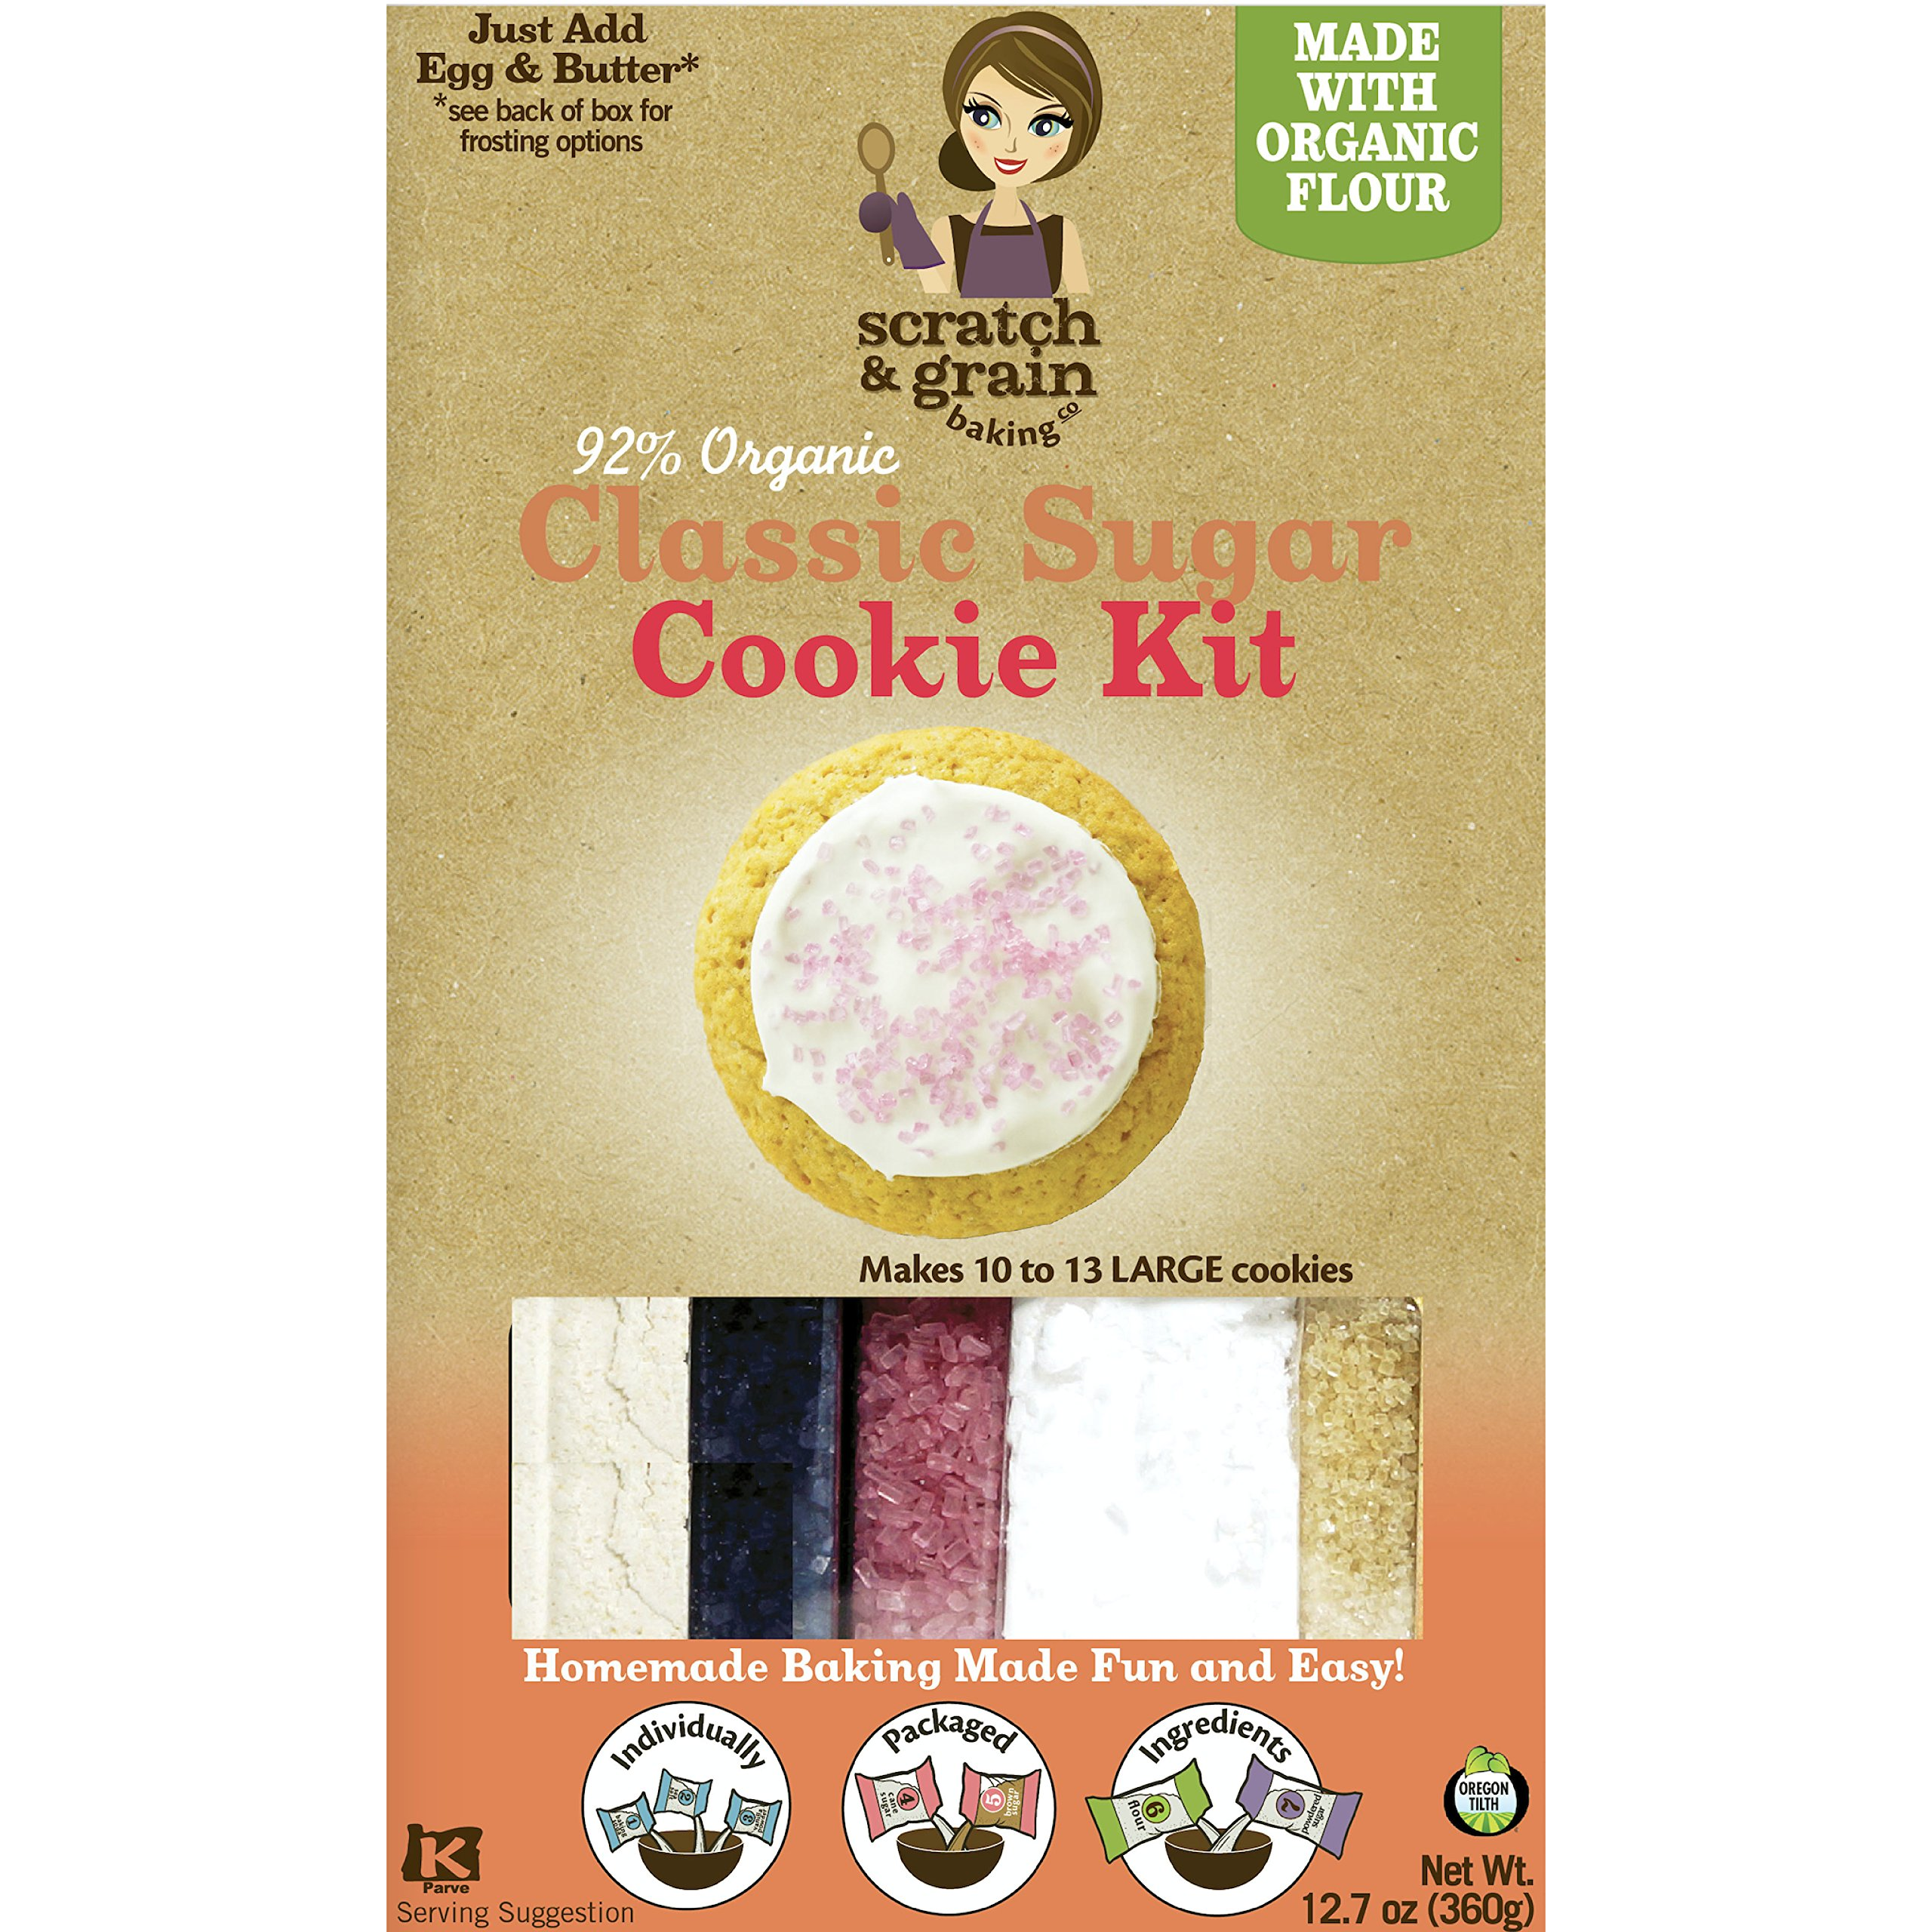 Scratch & Grain Baking All Natural Classic Sugar Cookie Kit